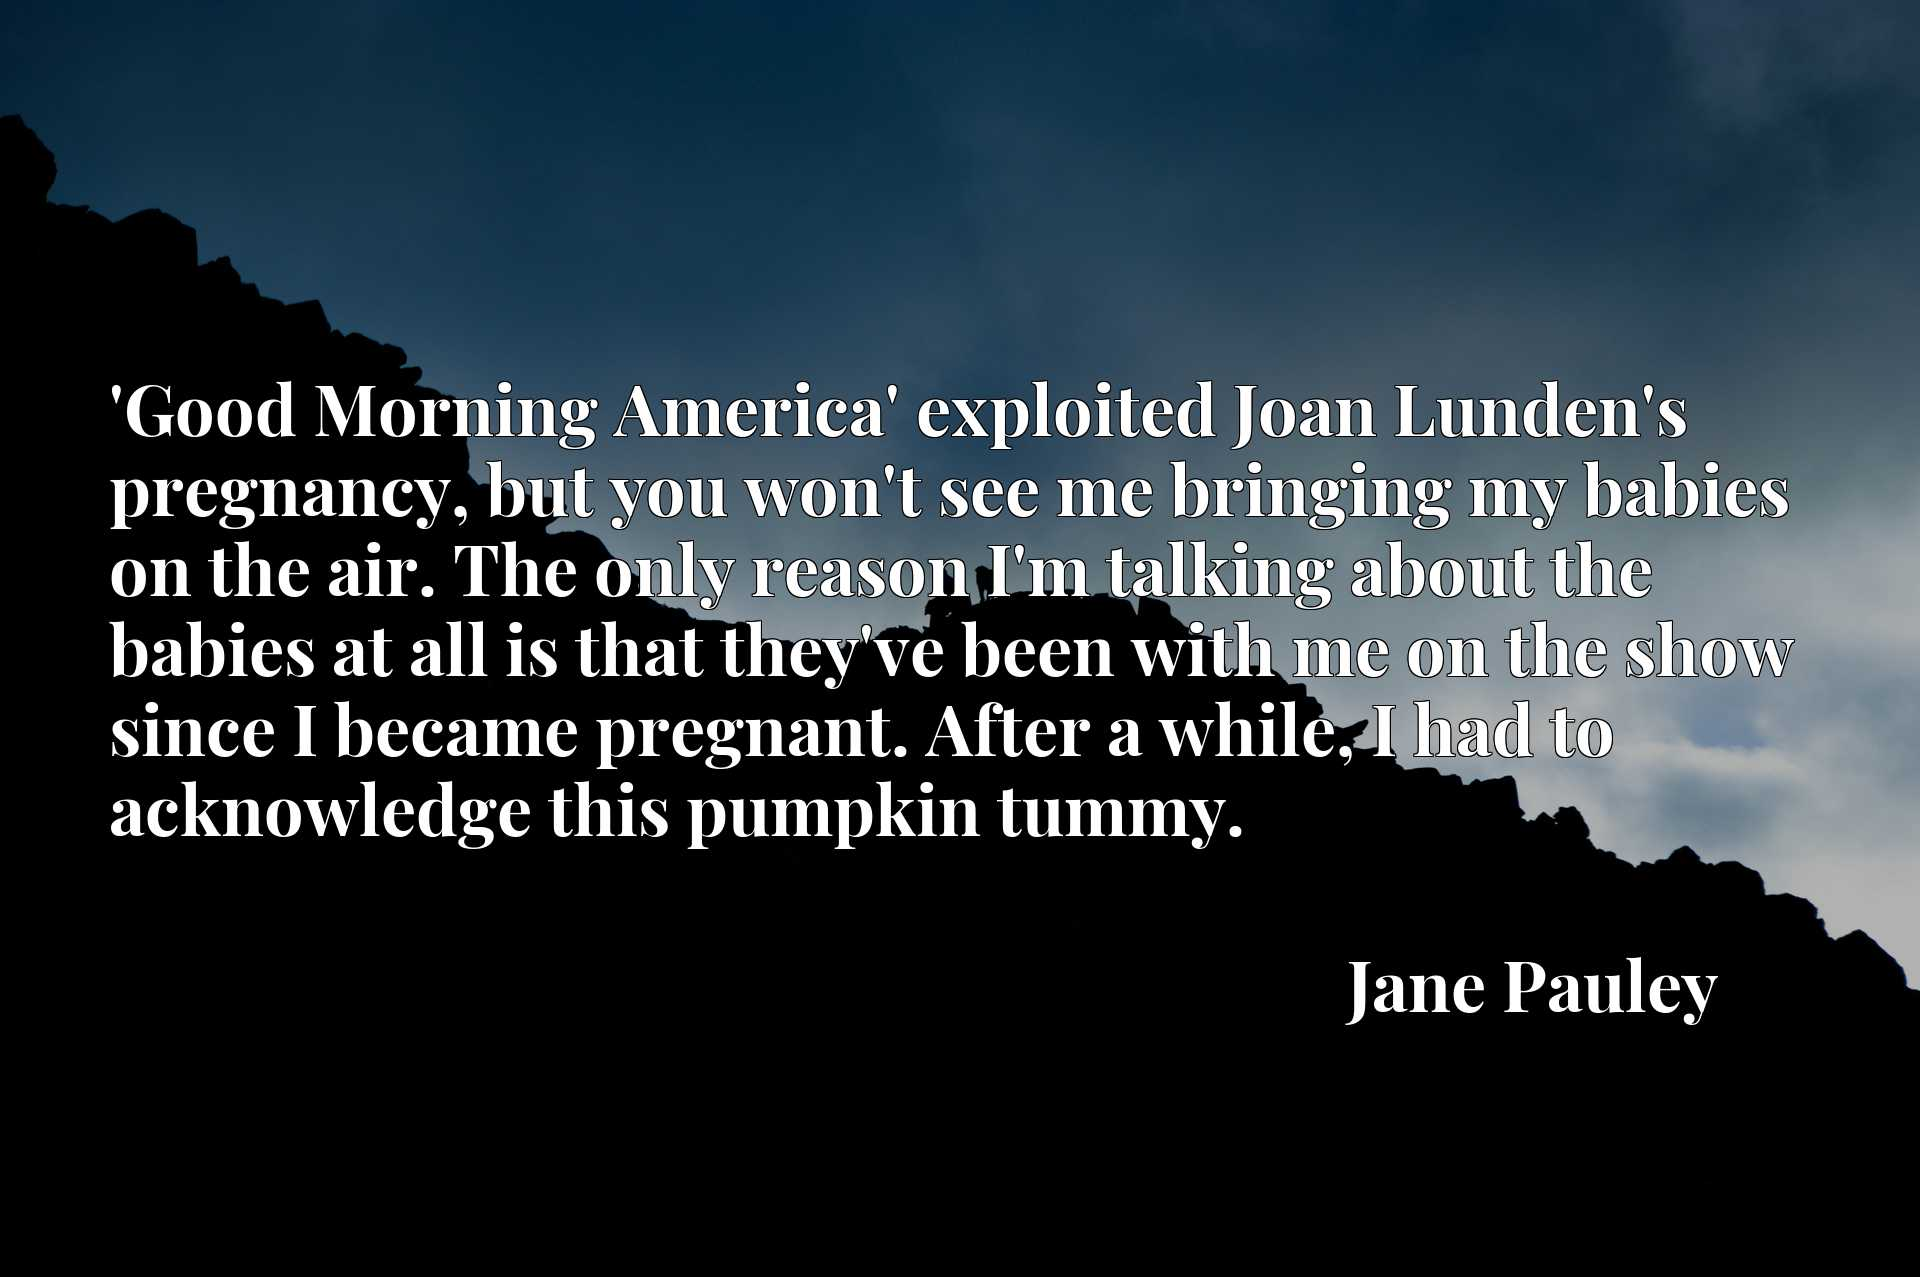 'Good Morning America' exploited Joan Lunden's pregnancy, but you won't see me bringing my babies on the air. The only reason I'm talking about the babies at all is that they've been with me on the show since I became pregnant. After a while, I had to acknowledge this pumpkin tummy.